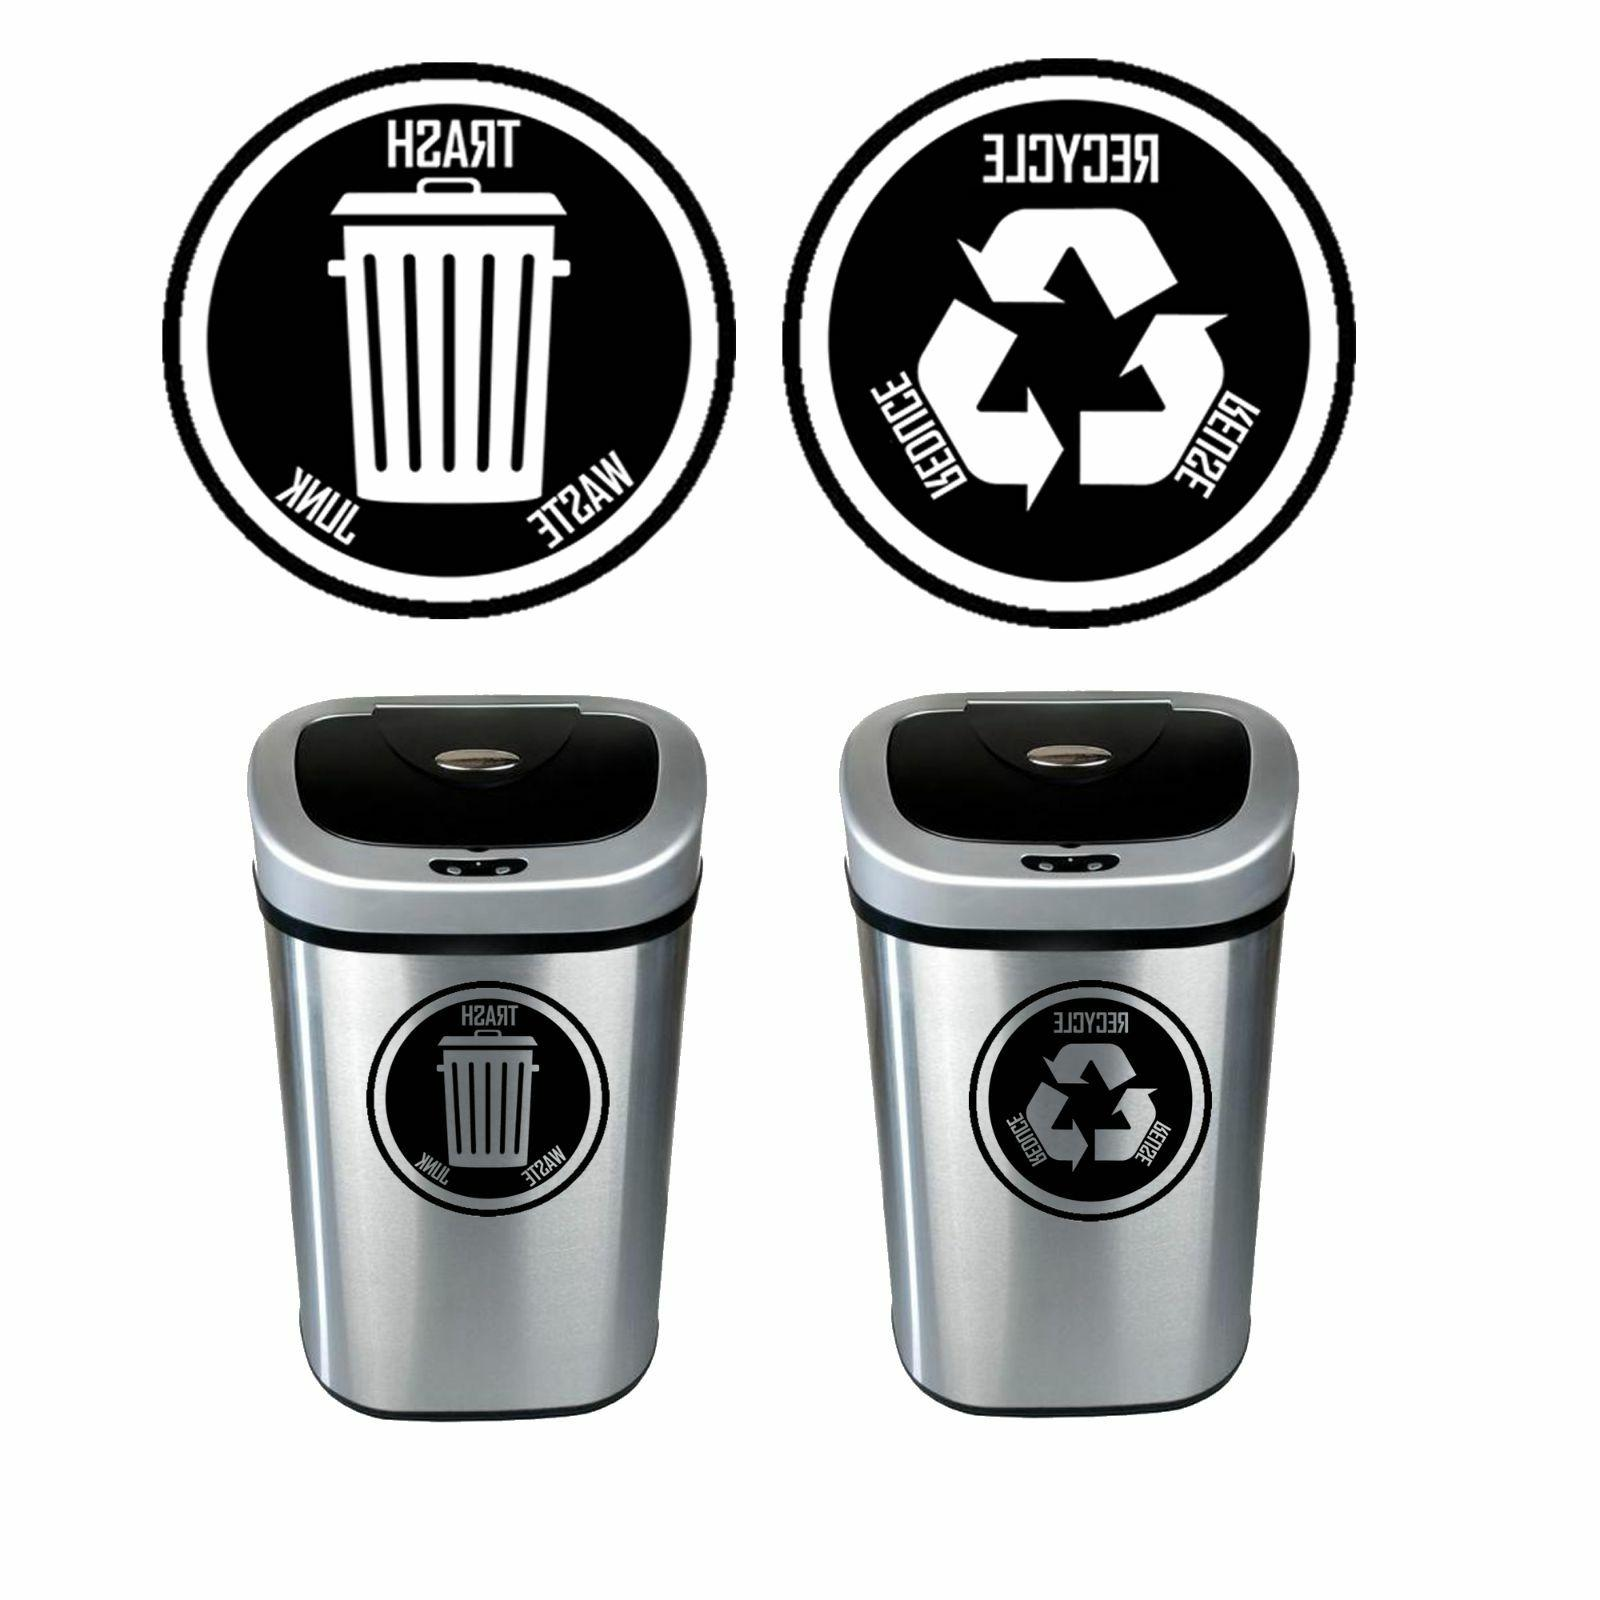 recycle and trash decal sticker for trash